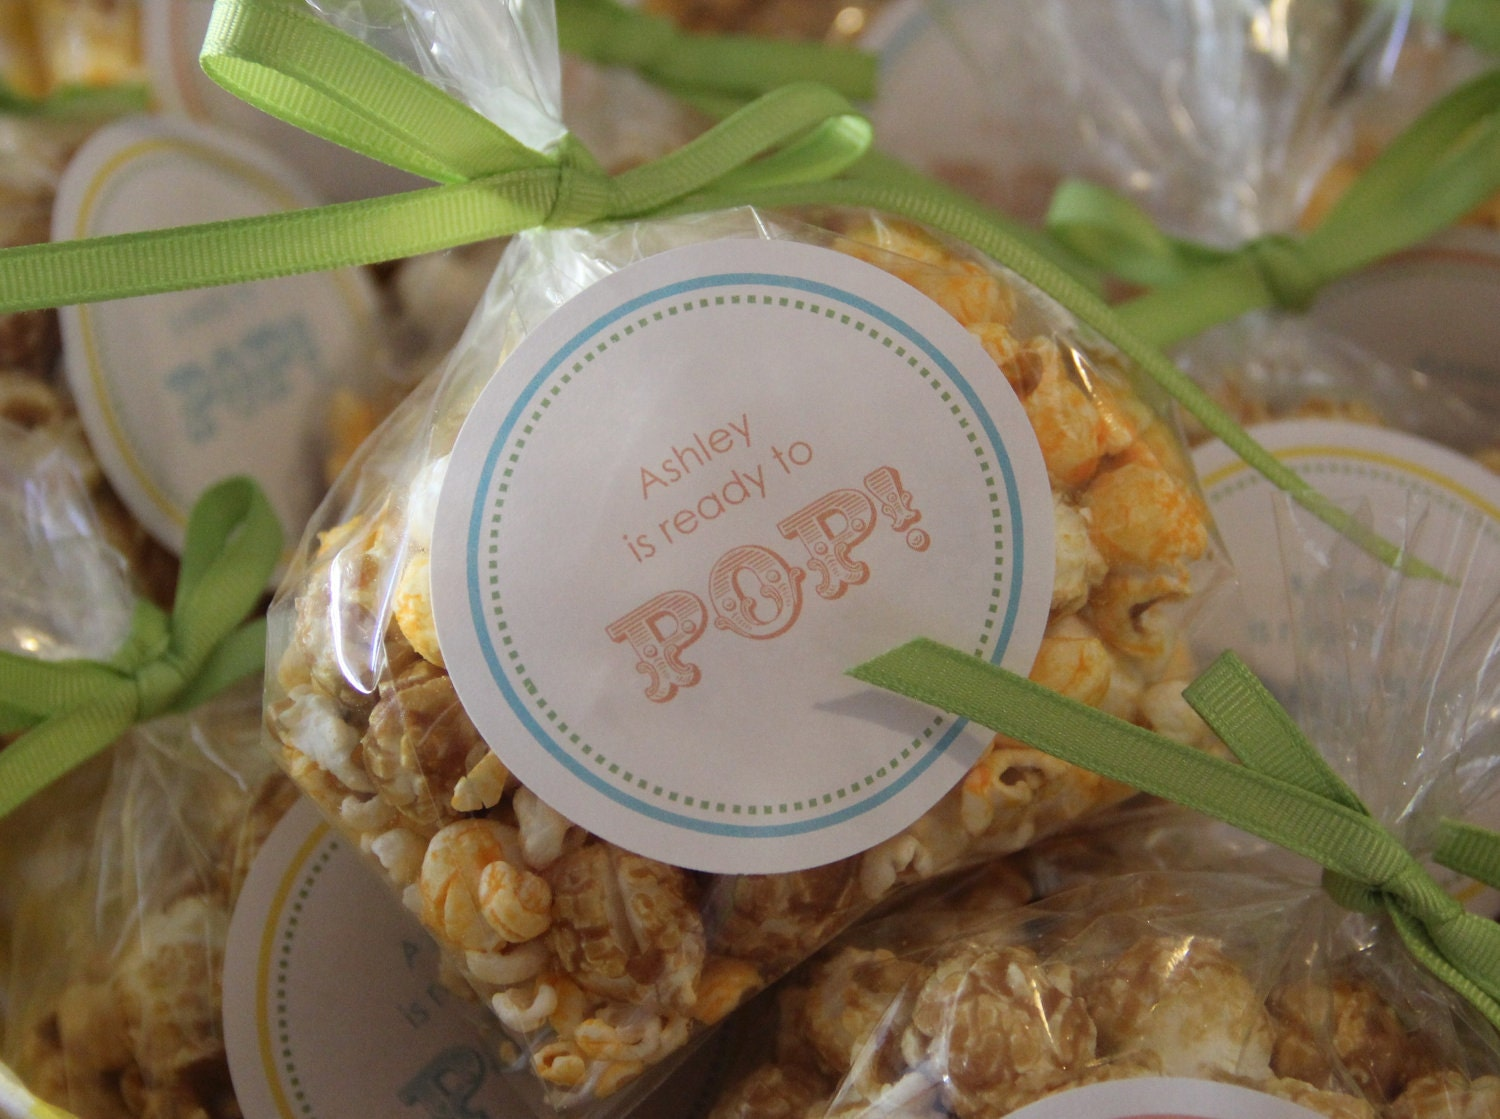 baby shower favor set set of 24 by amyolsaver on etsy